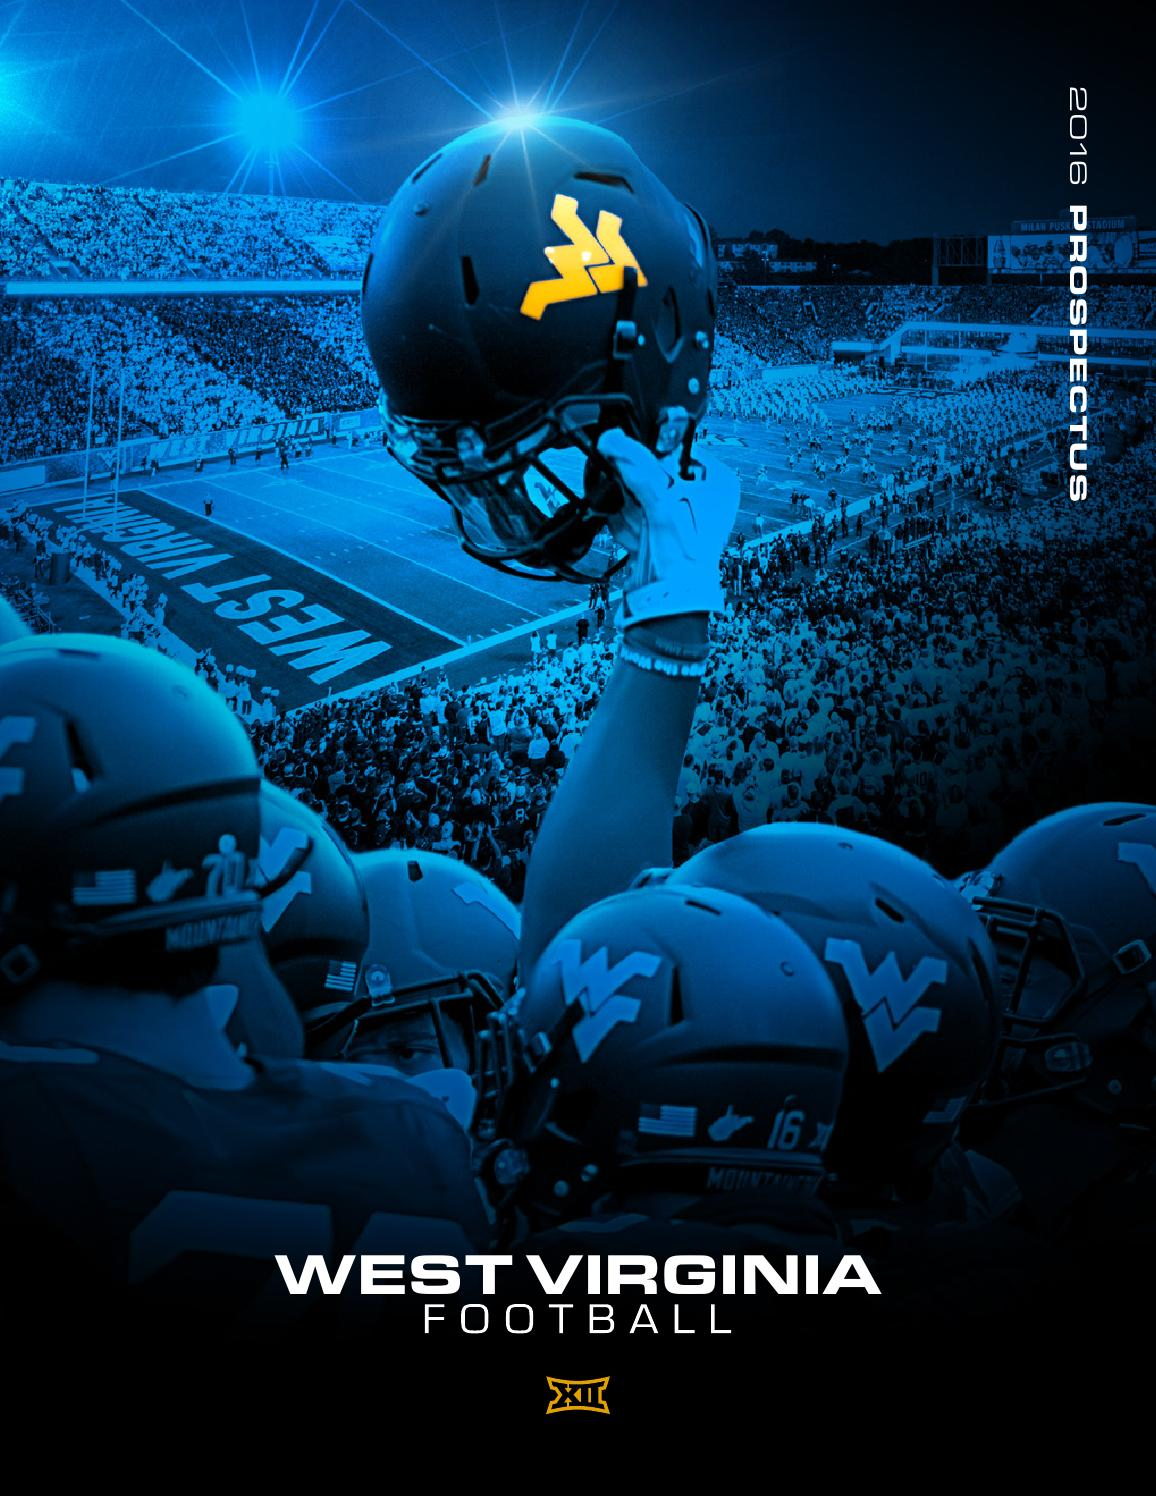 2016 WVU Football Prospectus by Joe Swan - Issuu